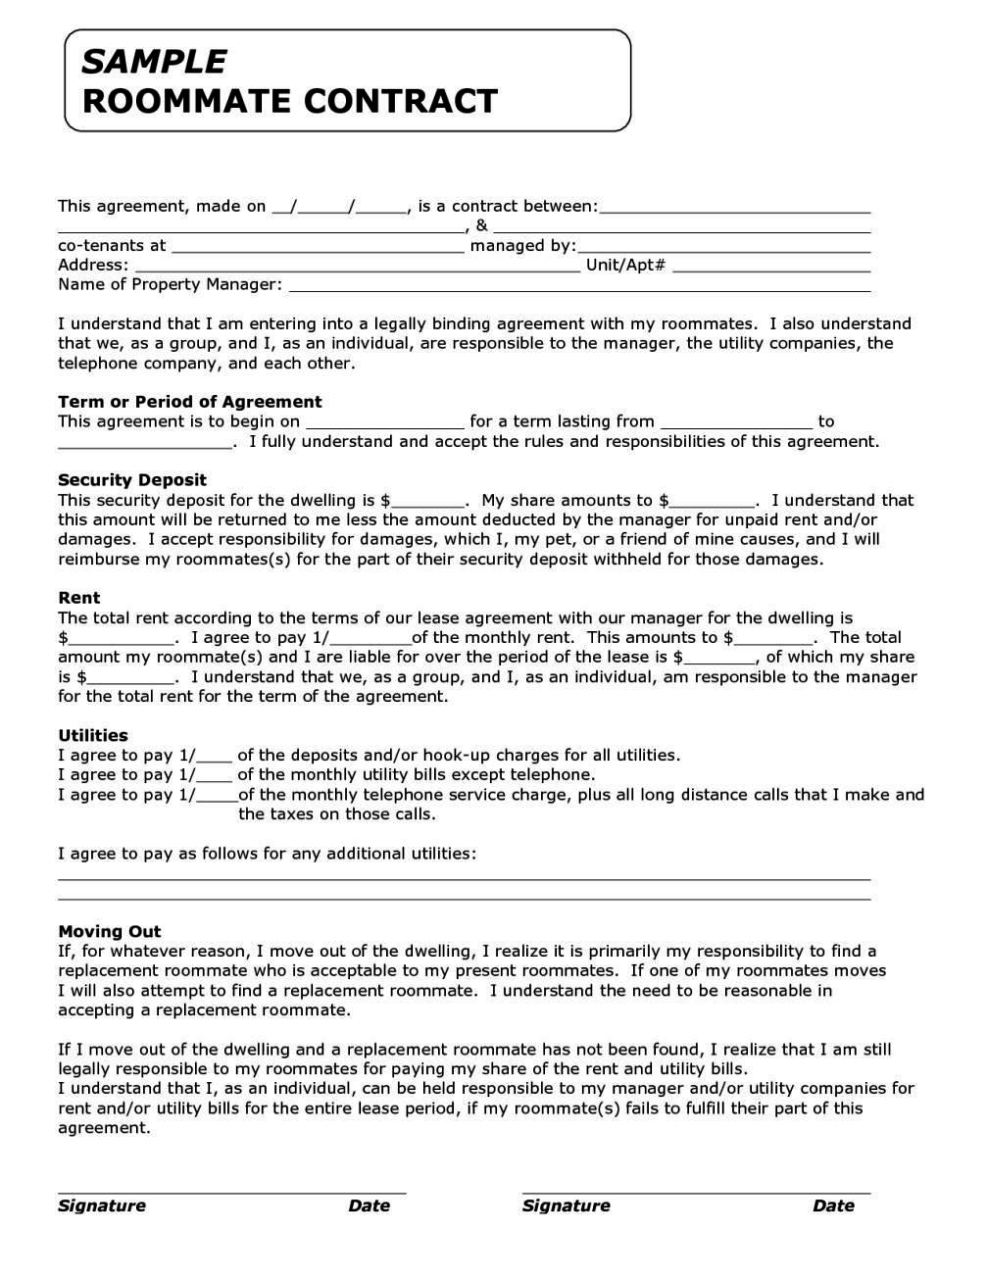 funny contracts and agreements